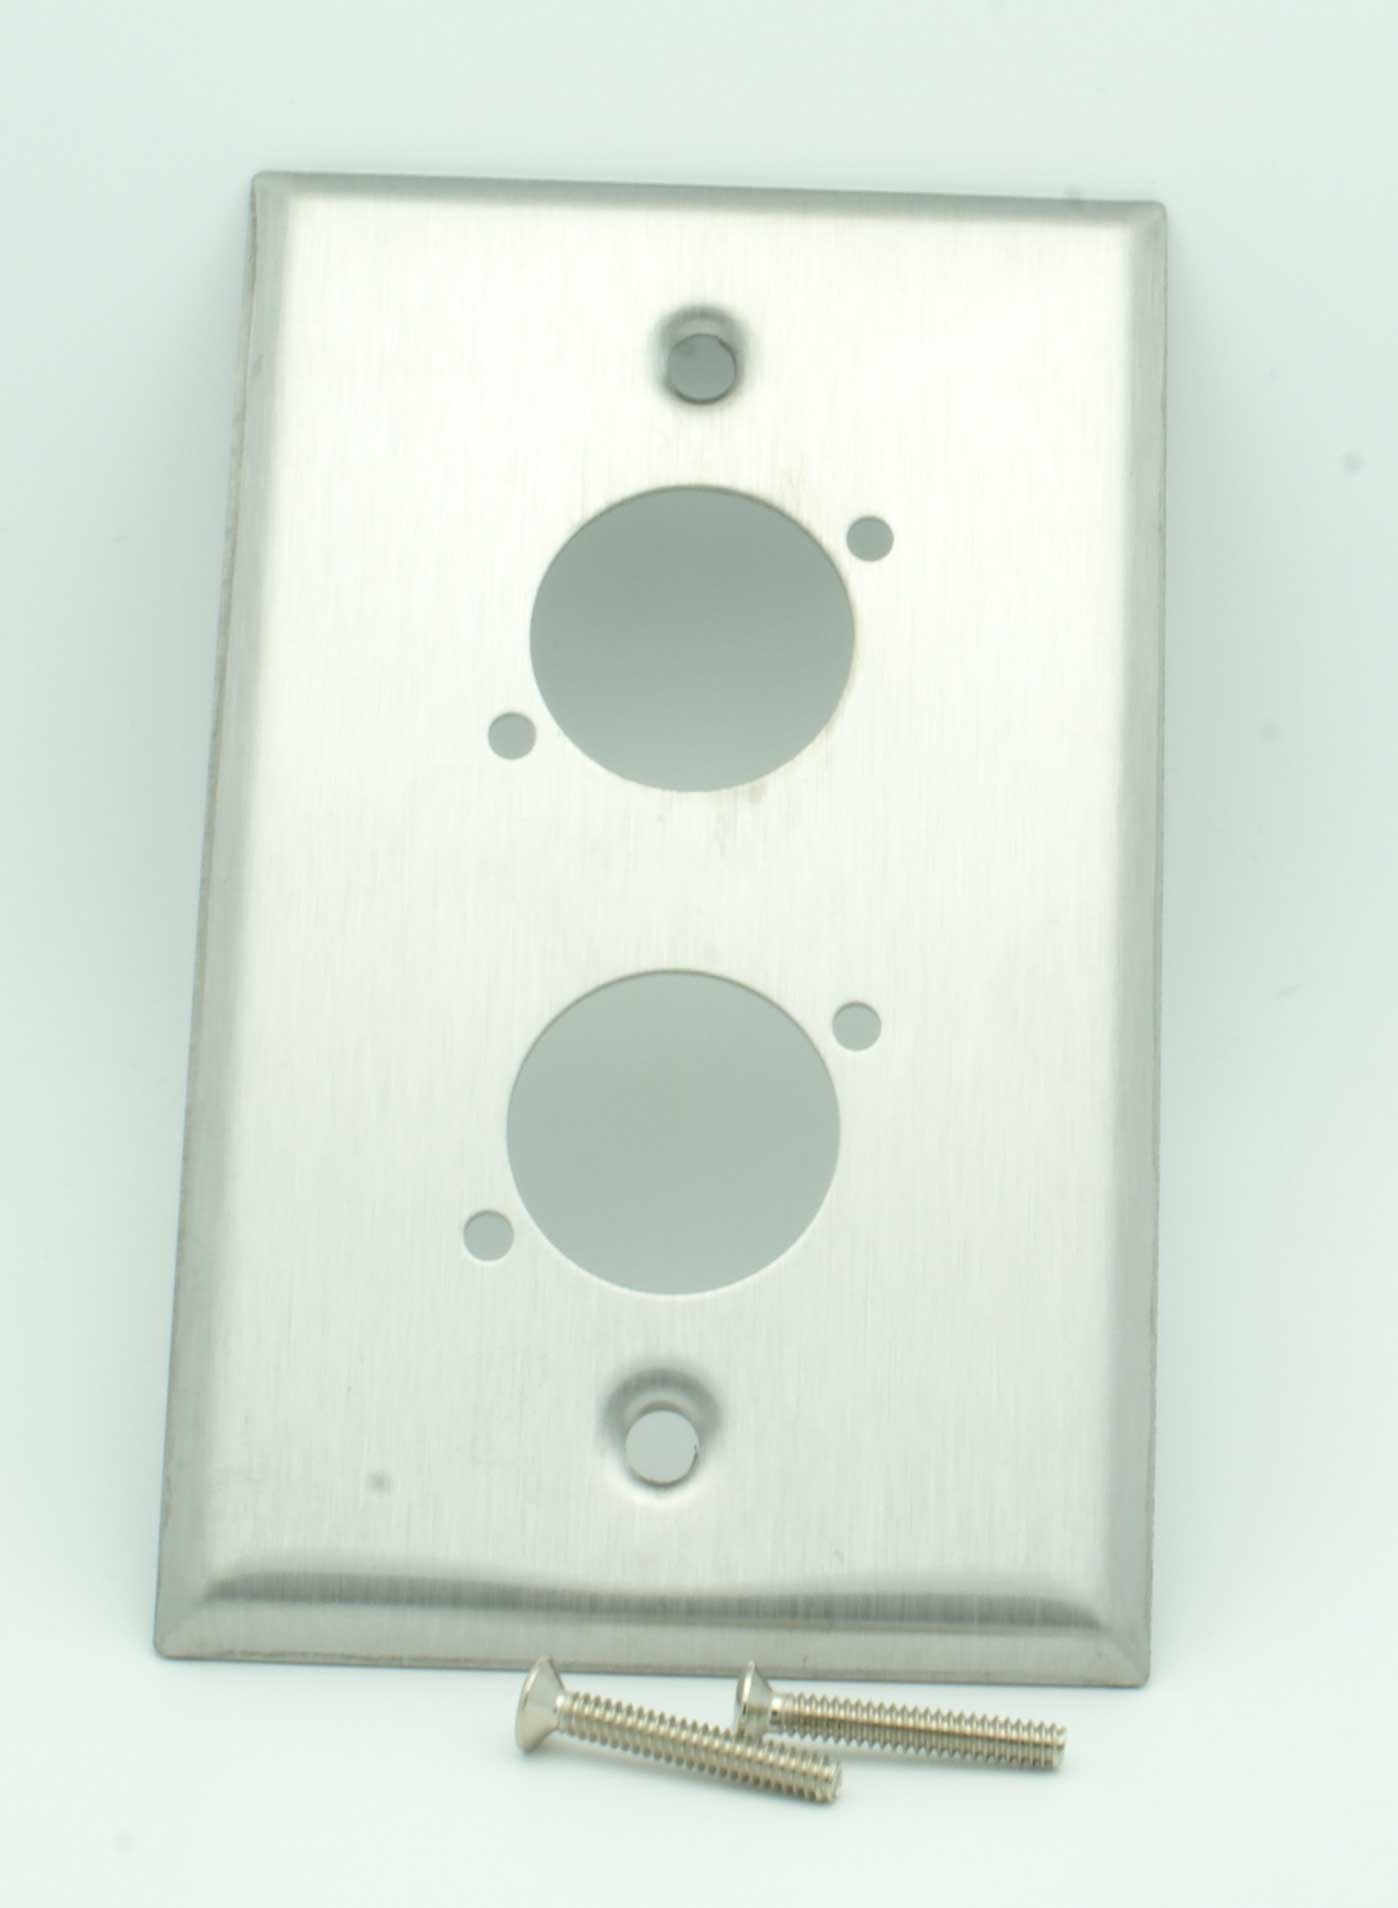 Blank Switch Plate Simple Dual Xlr Blank Wall Plate Stainless  Vetco Electronics Design Inspiration